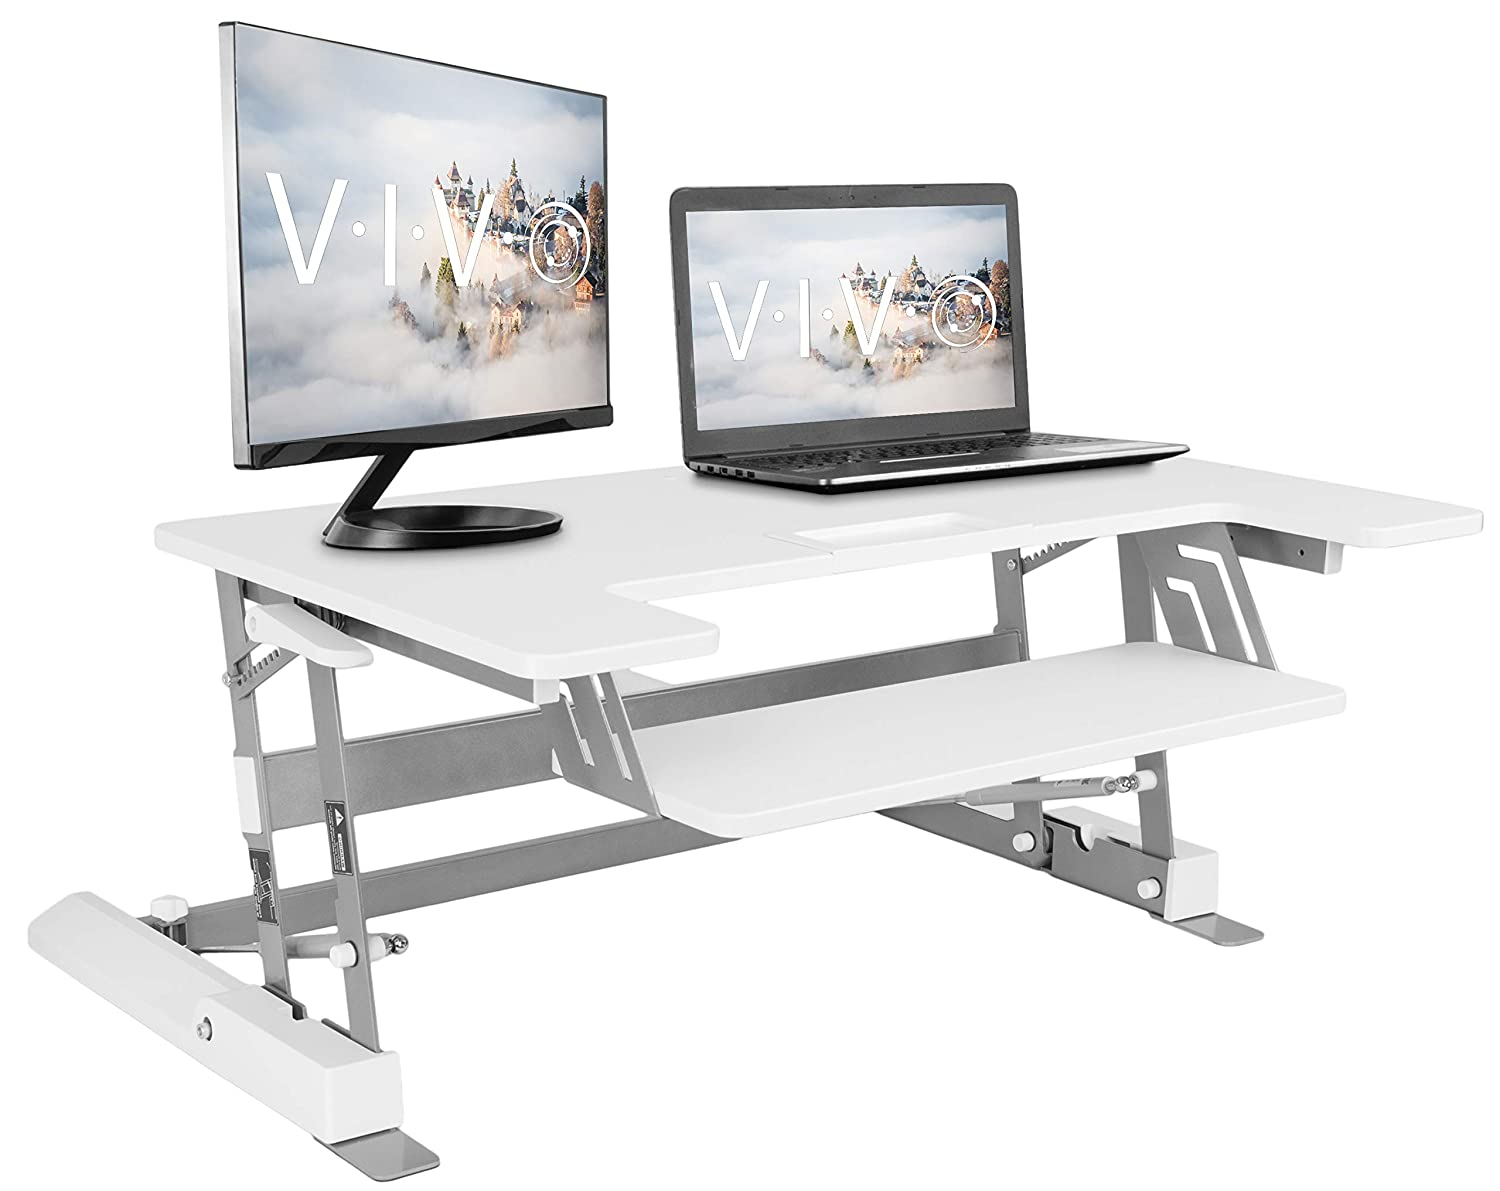 VIVO White Height Adjustable 36 inch Standing Desk Converter | Sit Stand  Tabletop Dual Monitor and Laptop Riser Workstation (DESK-V000W)